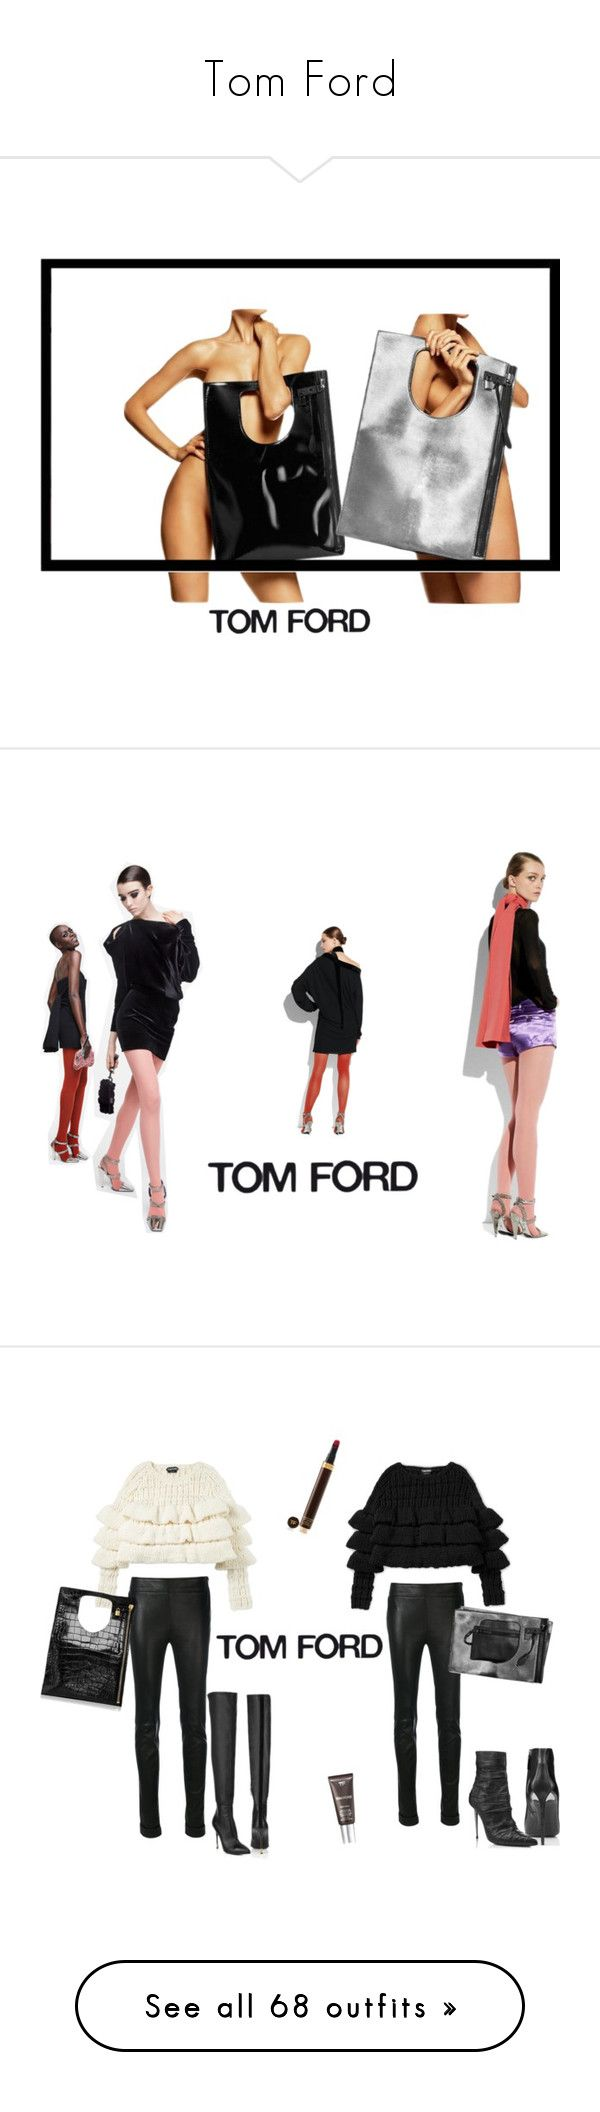 tom ford by nastya kochurova liked on polyvore featuring alix tom